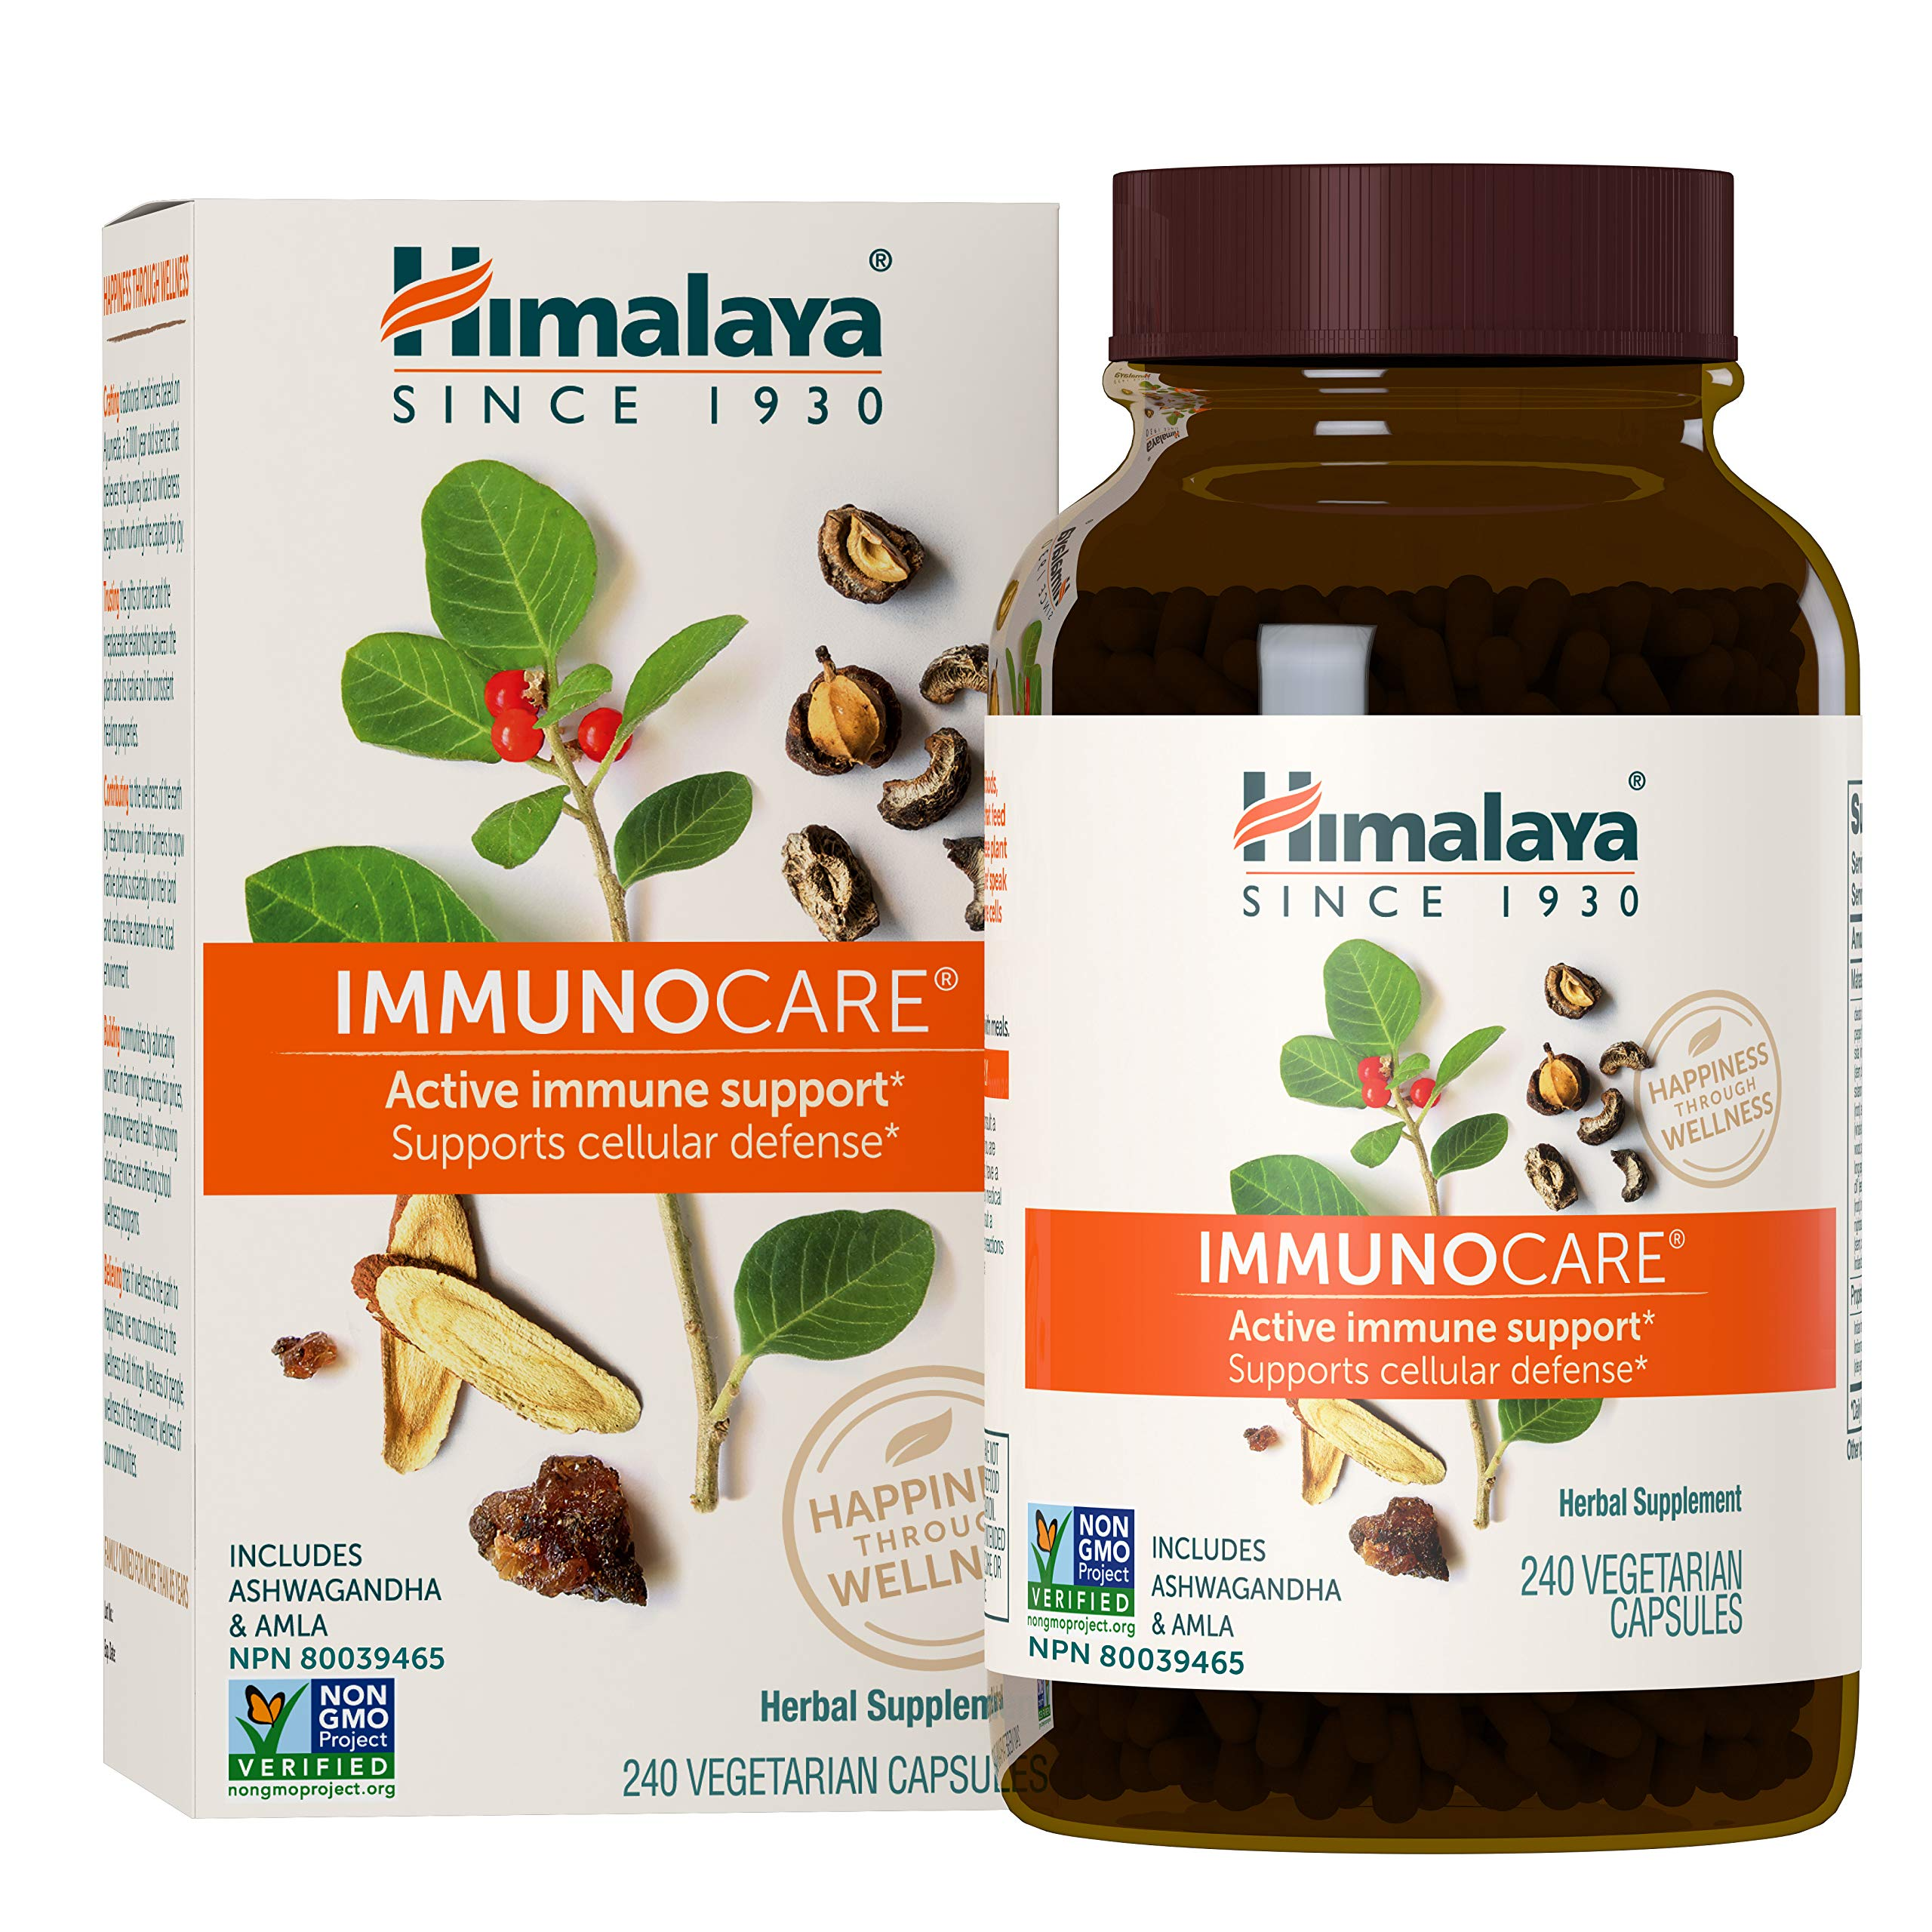 Himalaya ImmunoCare for Active Immune Support and Cellular Defense, 840 mg, 240 Capsules, 2 Month Supply